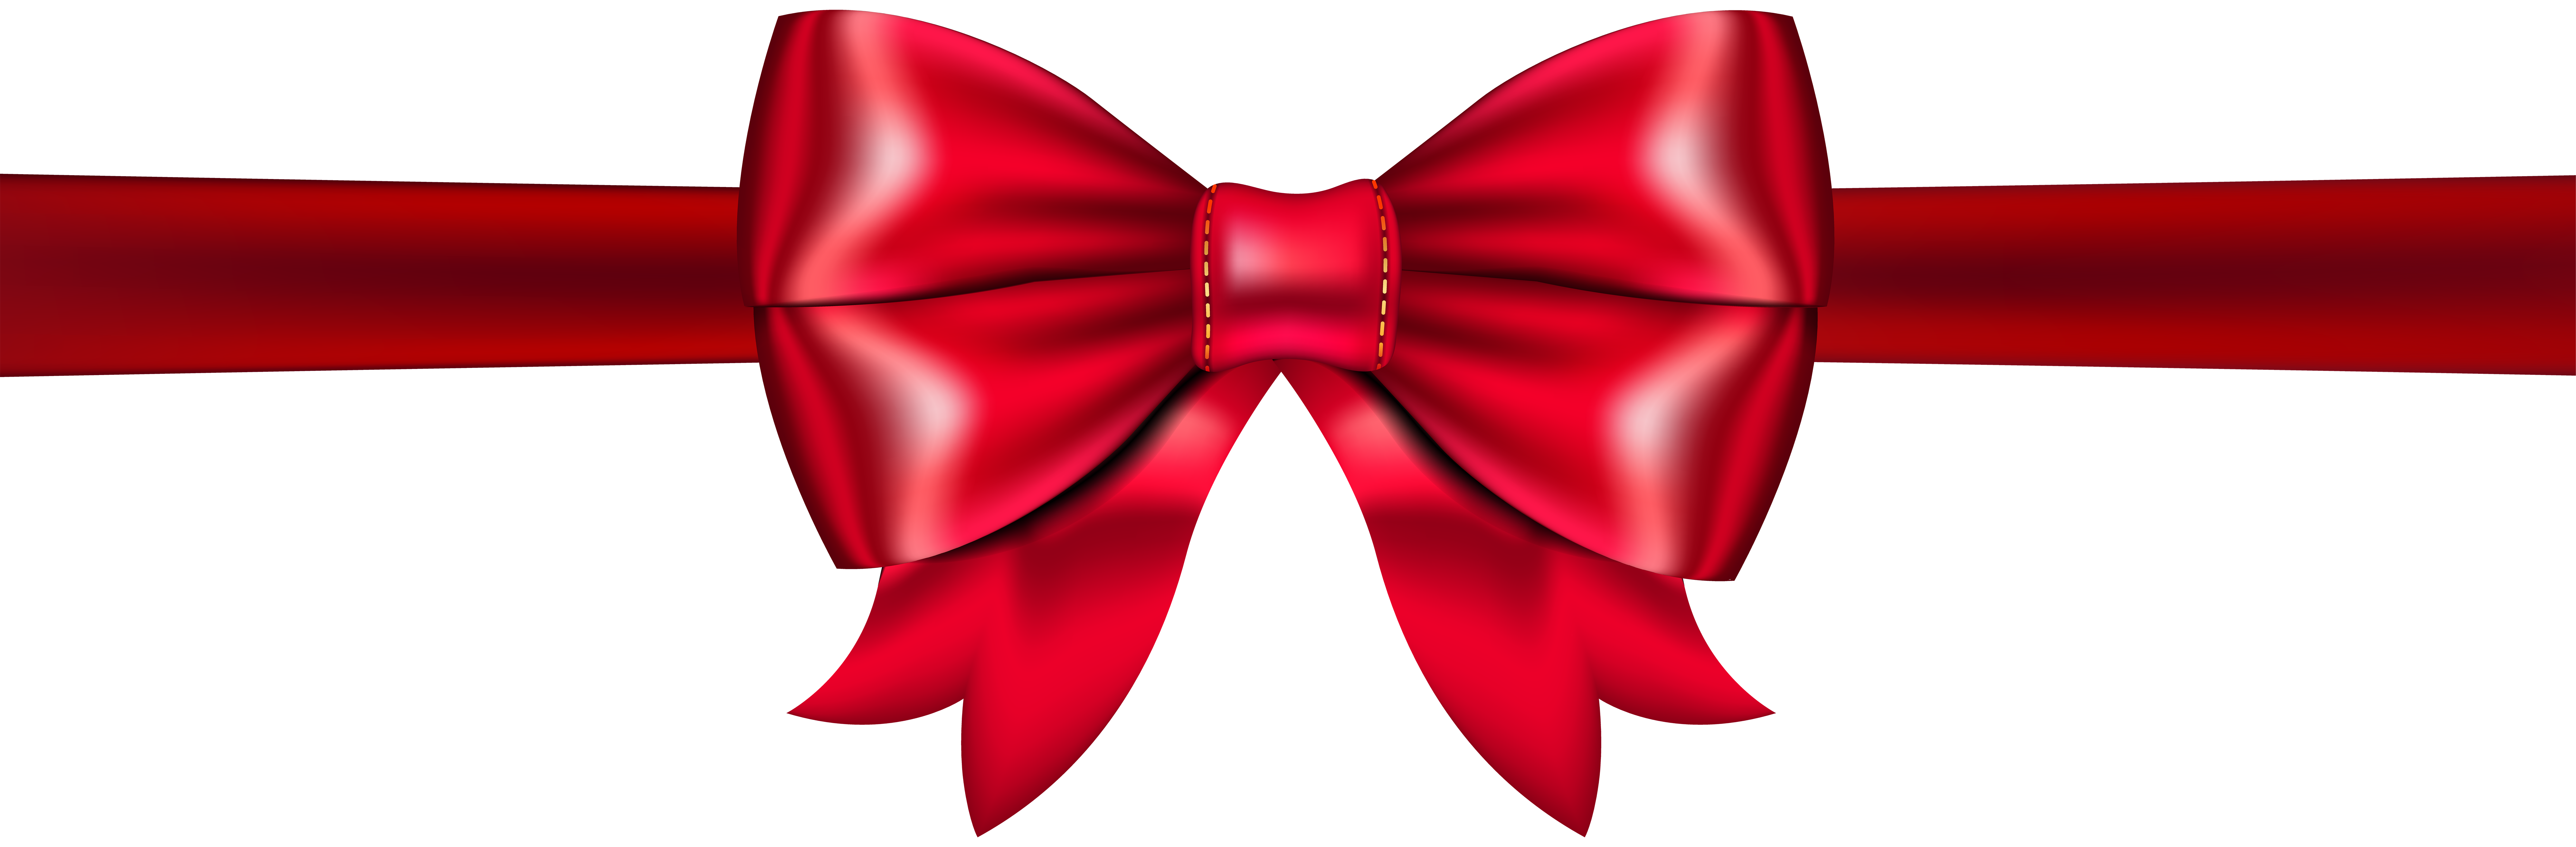 8000x2631 Red Bow Png Clip Artu200b Gallery Yopriceville